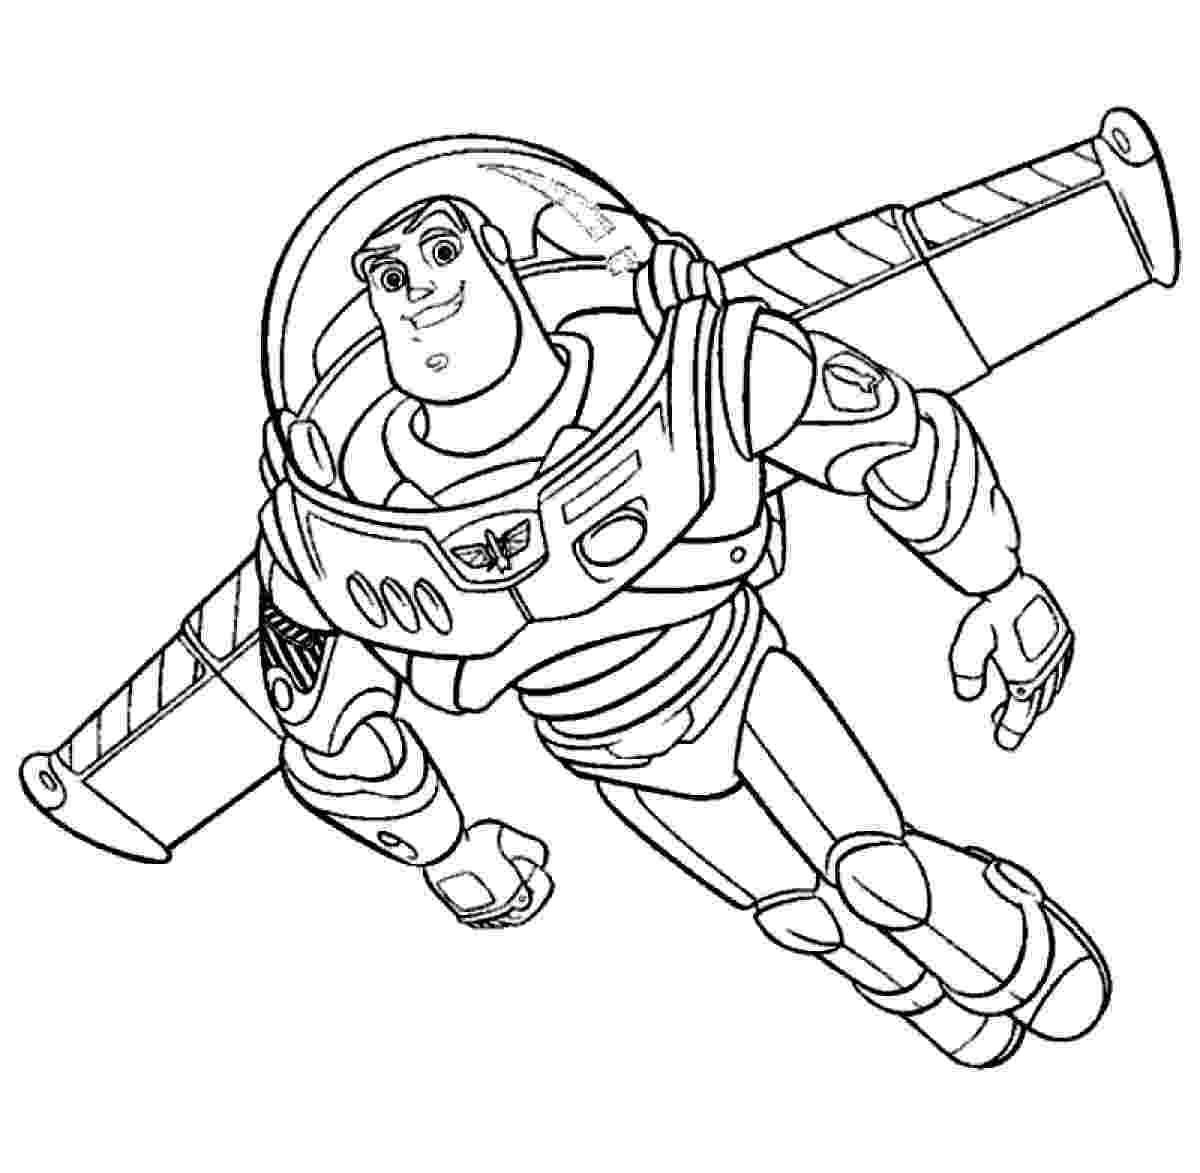 buzz lightyear printable coloring pages buzz lightyear coloring pages getcoloringpagescom buzz coloring lightyear printable pages